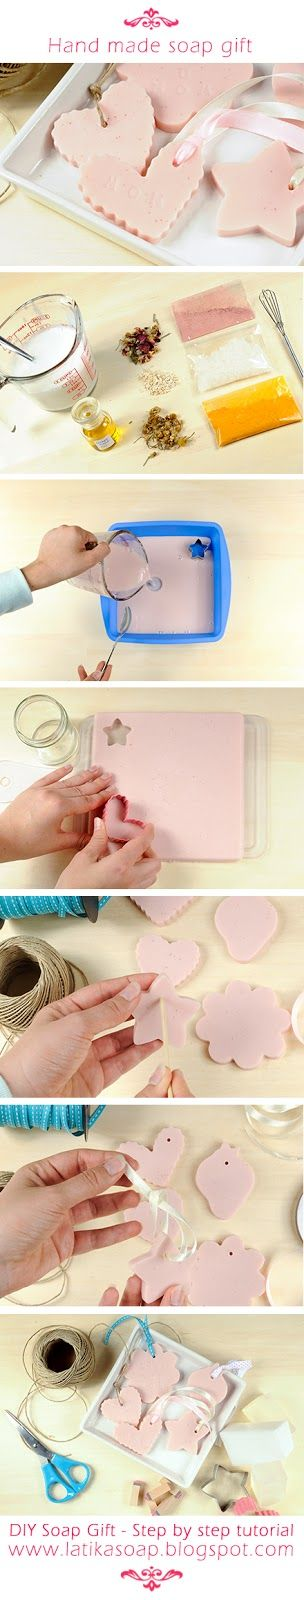 DIY Soap gift - Mothers day gift idea #diy #soap #mother #tutorial